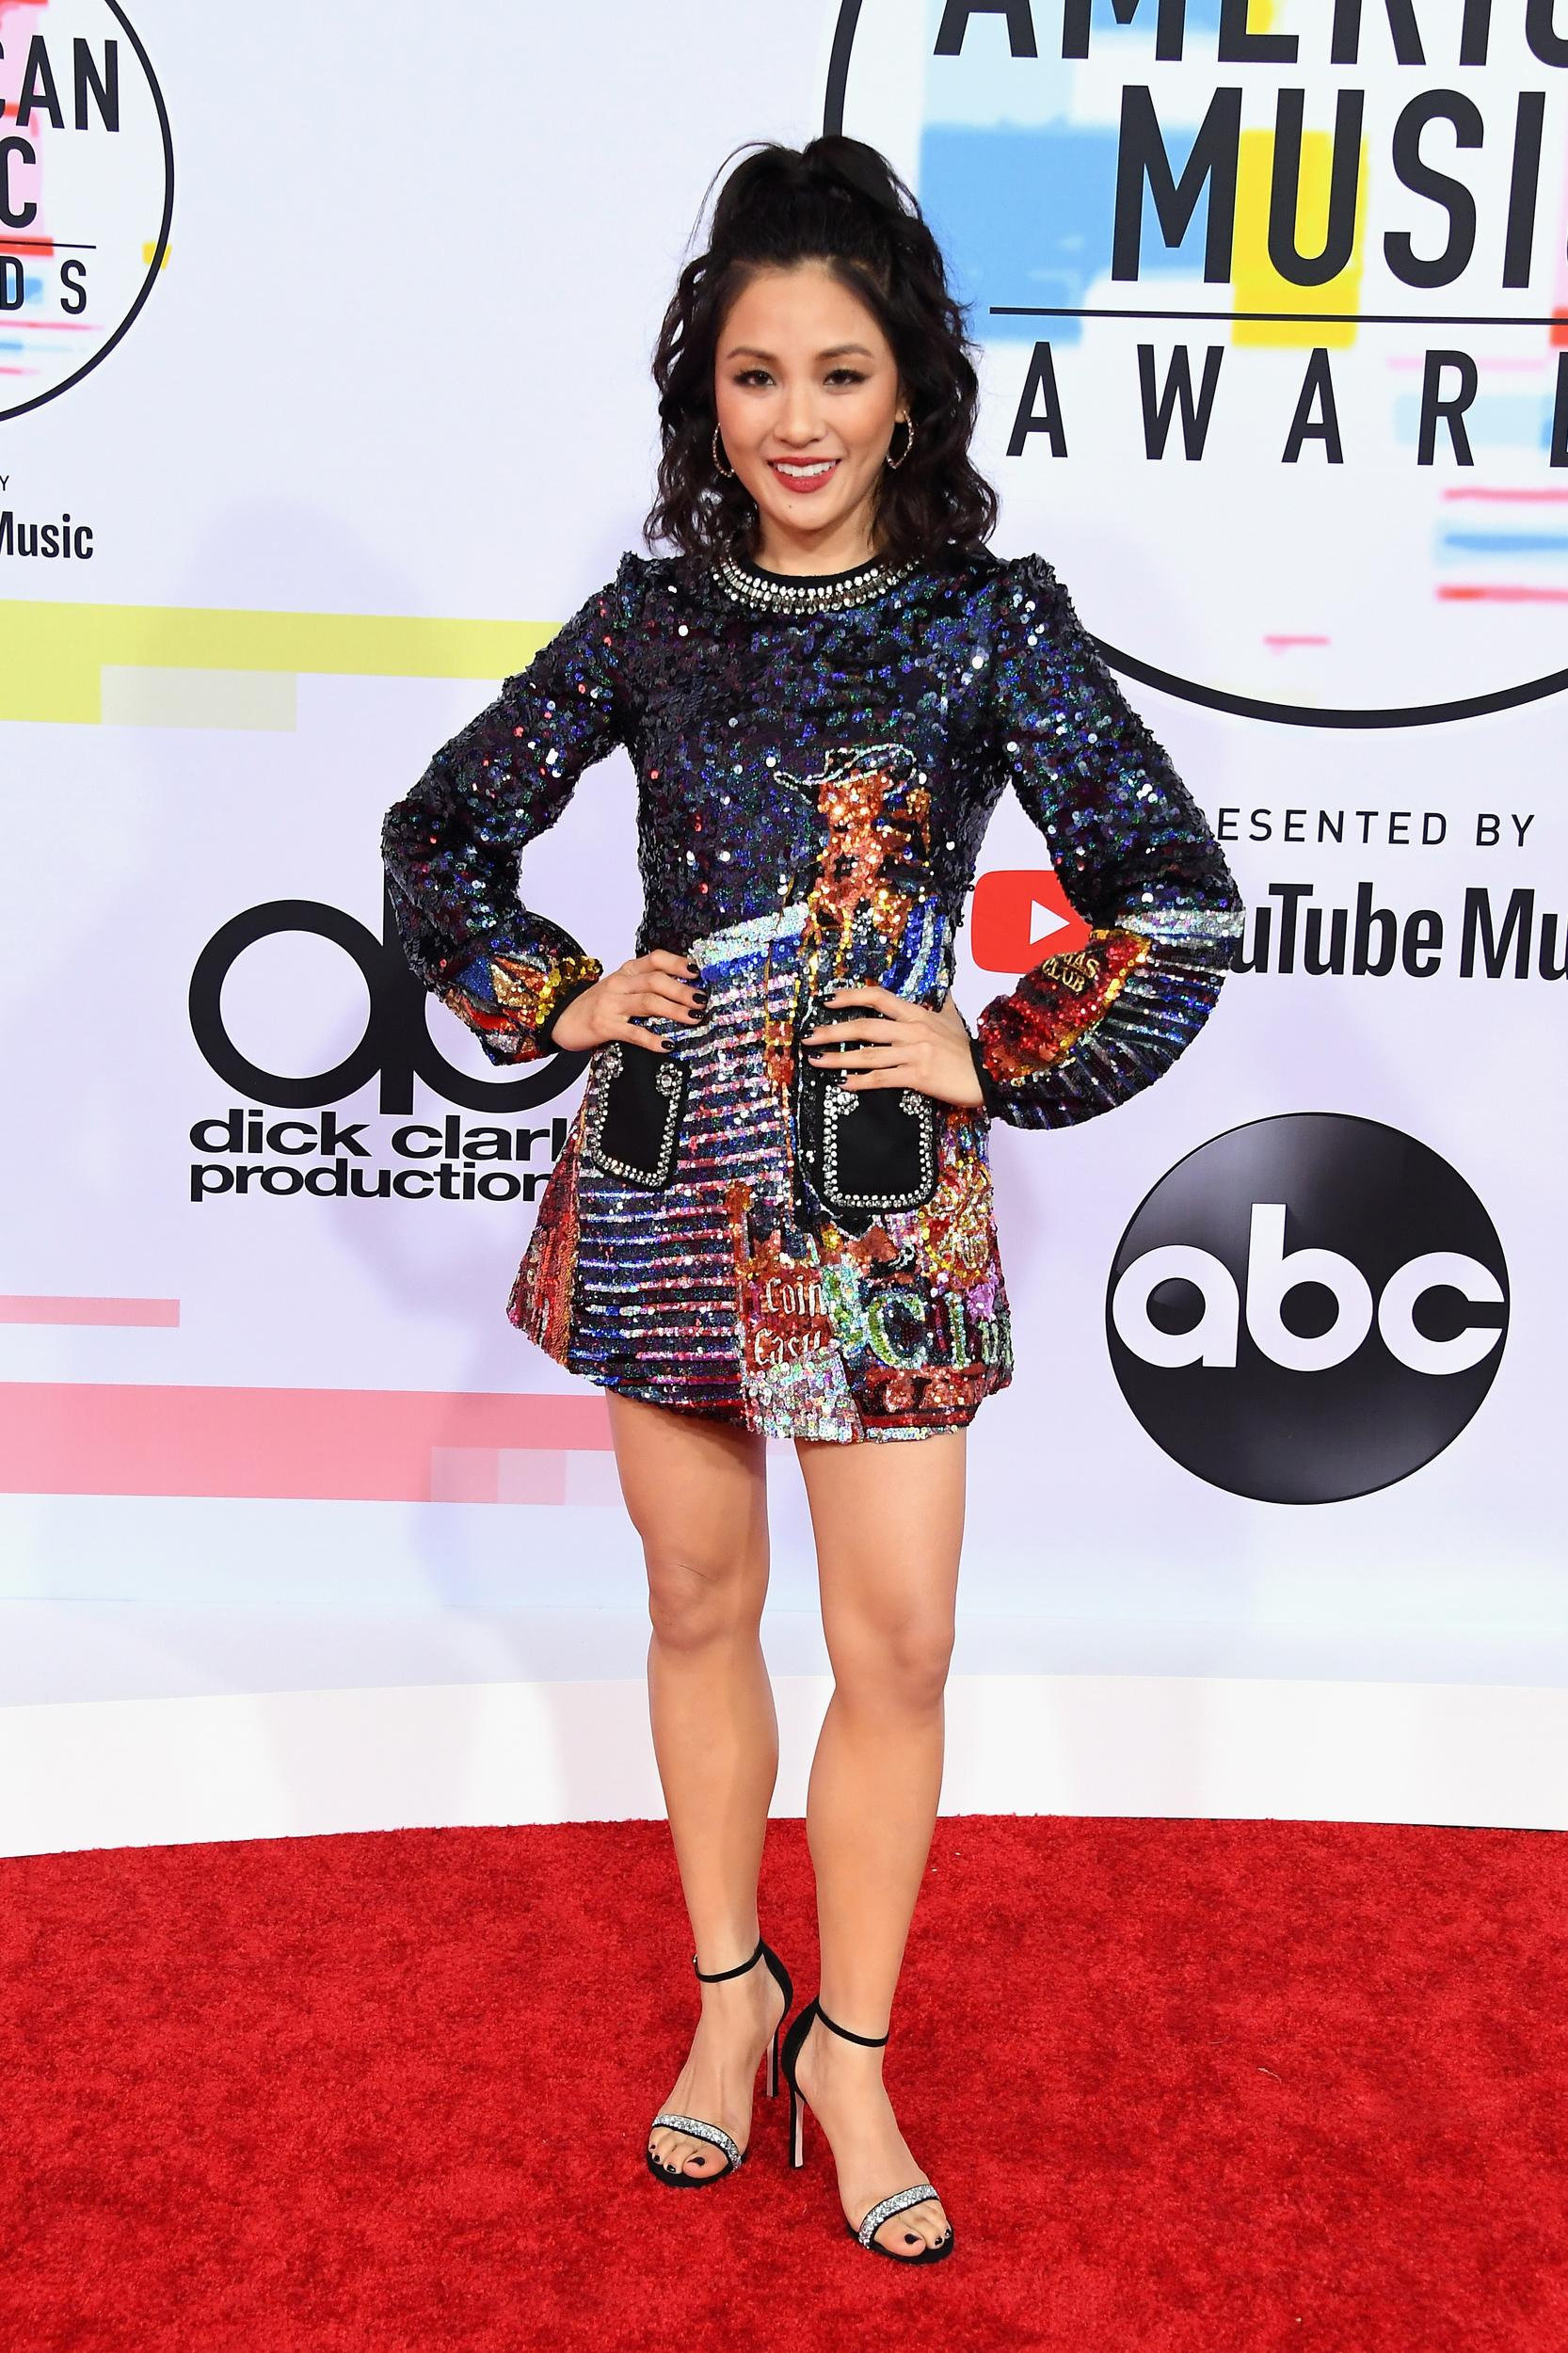 LOS ANGELES, CA - OCTOBER 09:  Constance Wu attends the 2018 American Music Awards at Microsoft Theater on October 9, 2018 in Los Angeles, California.  (Photo by Steve Granitz/WireImage)